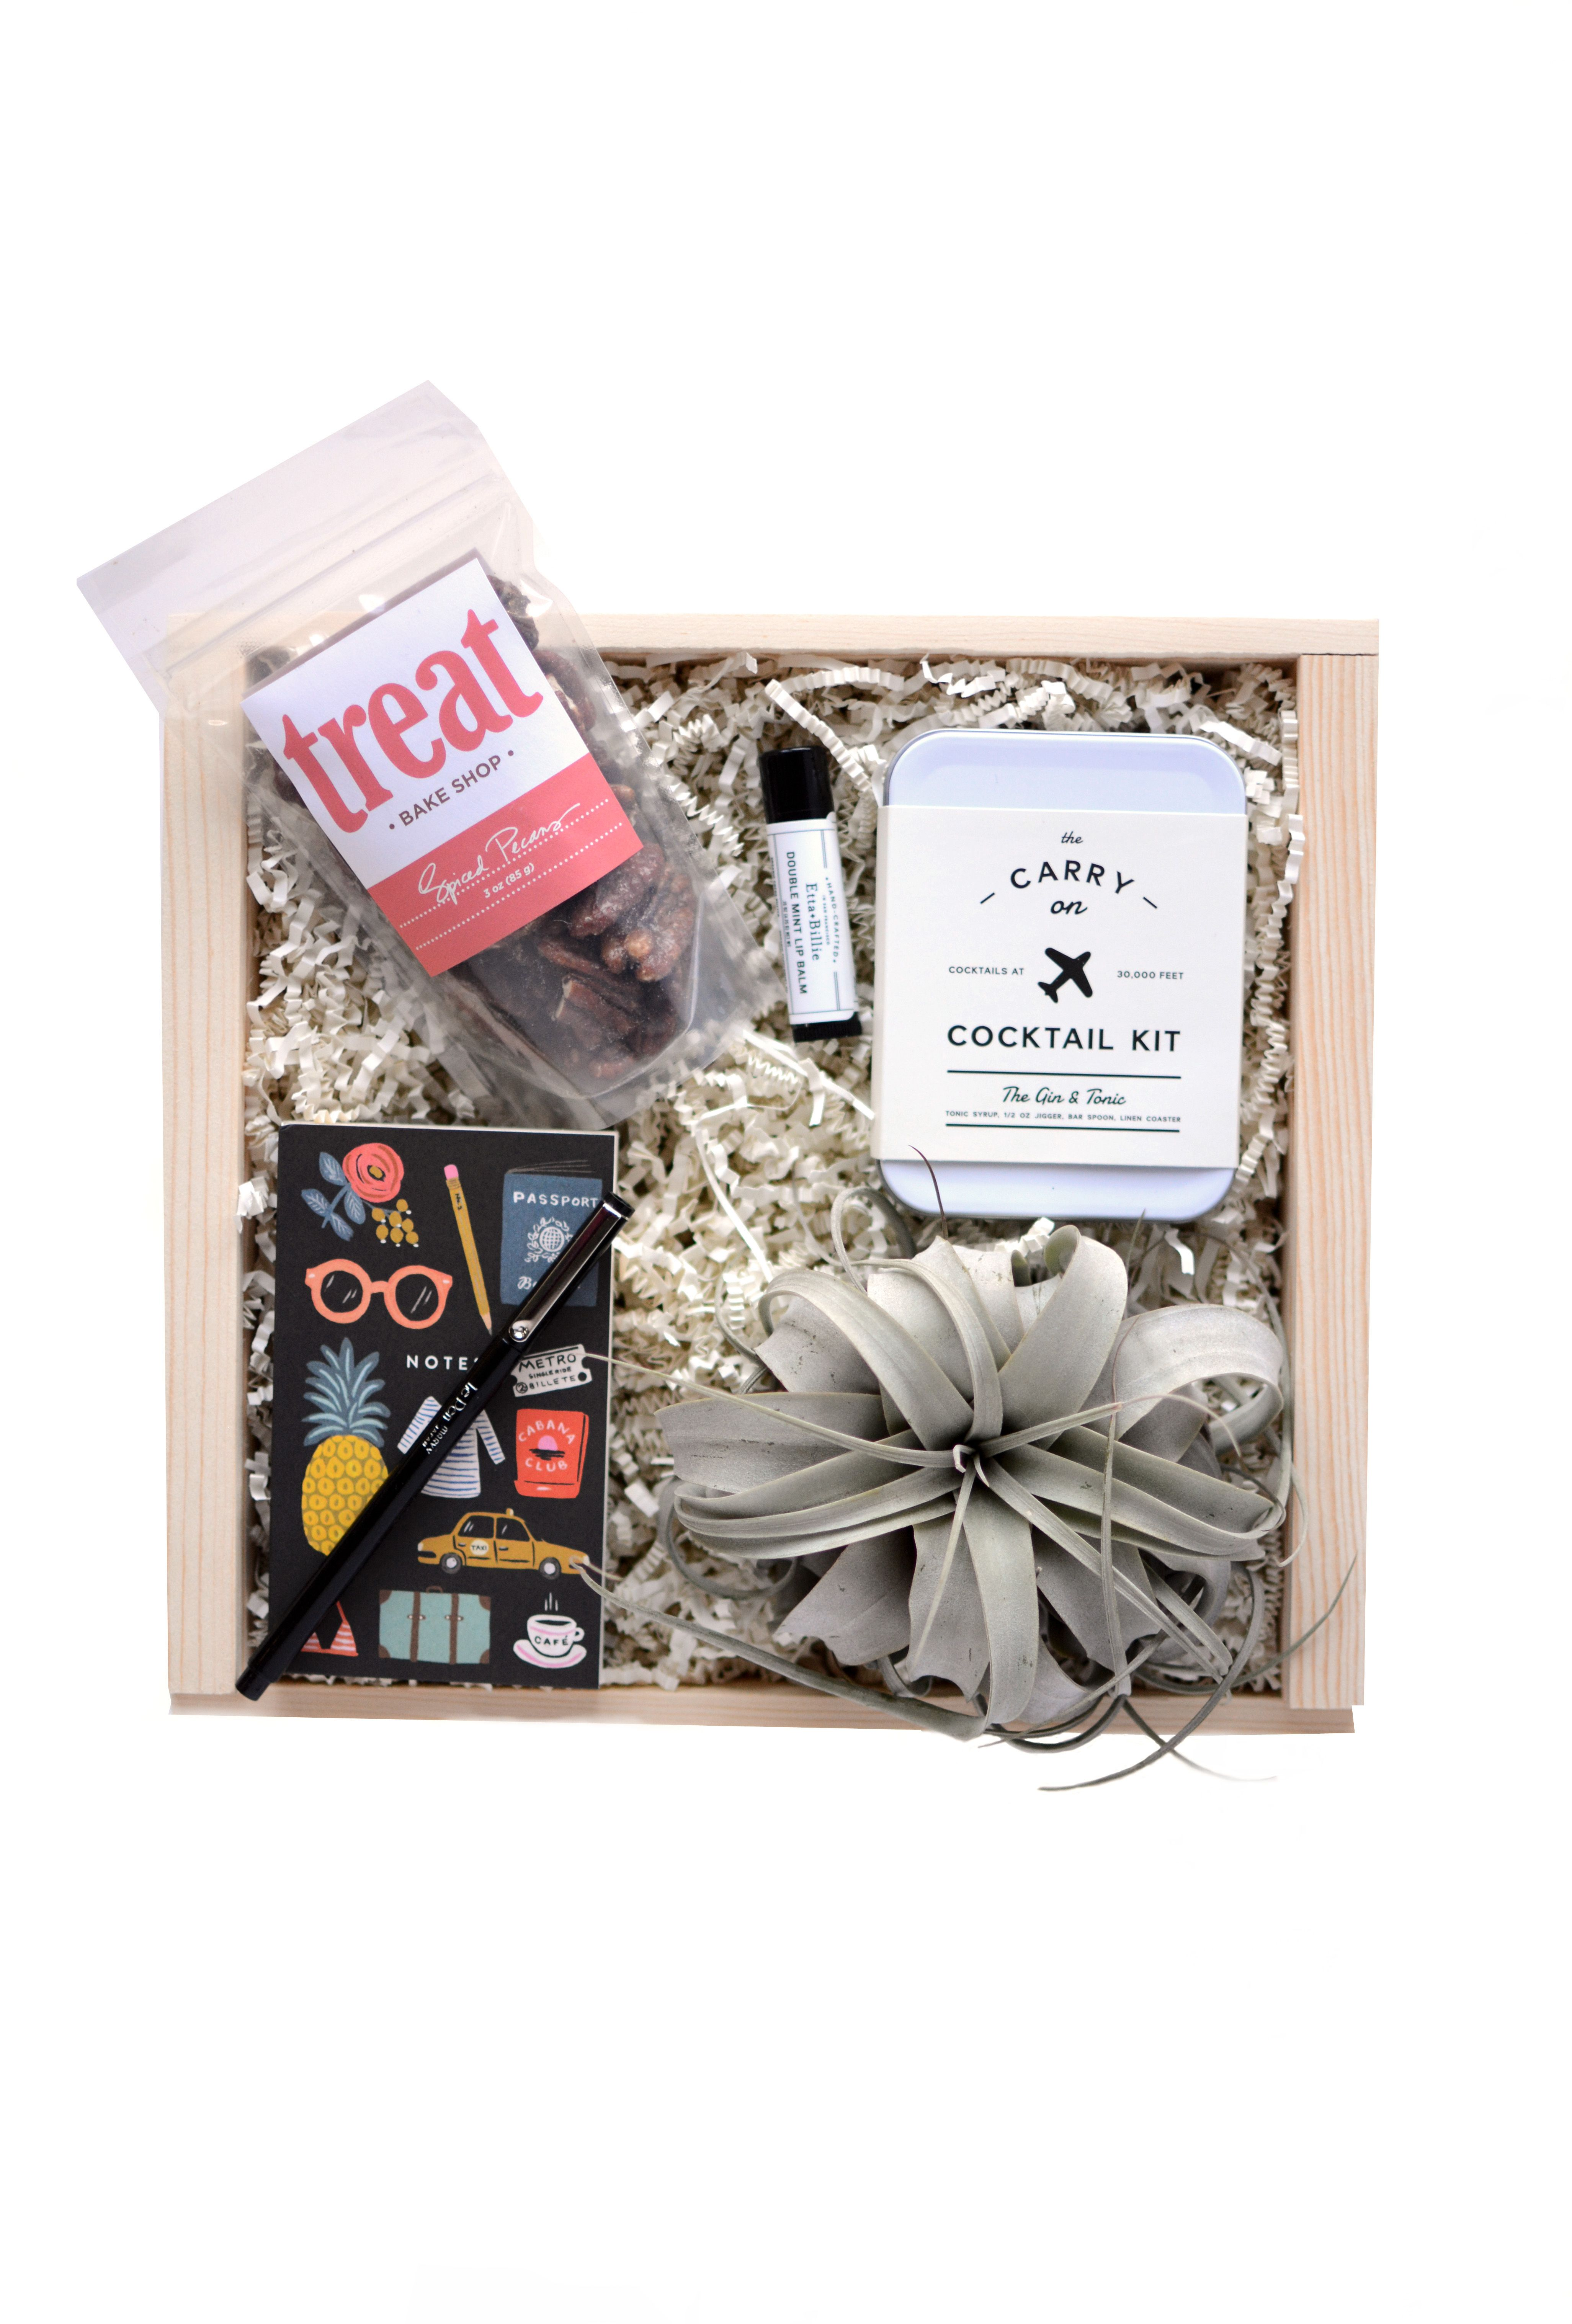 Travel Travel Gifts Gift Ideas Gift Boxes Gifts Gifts For Him